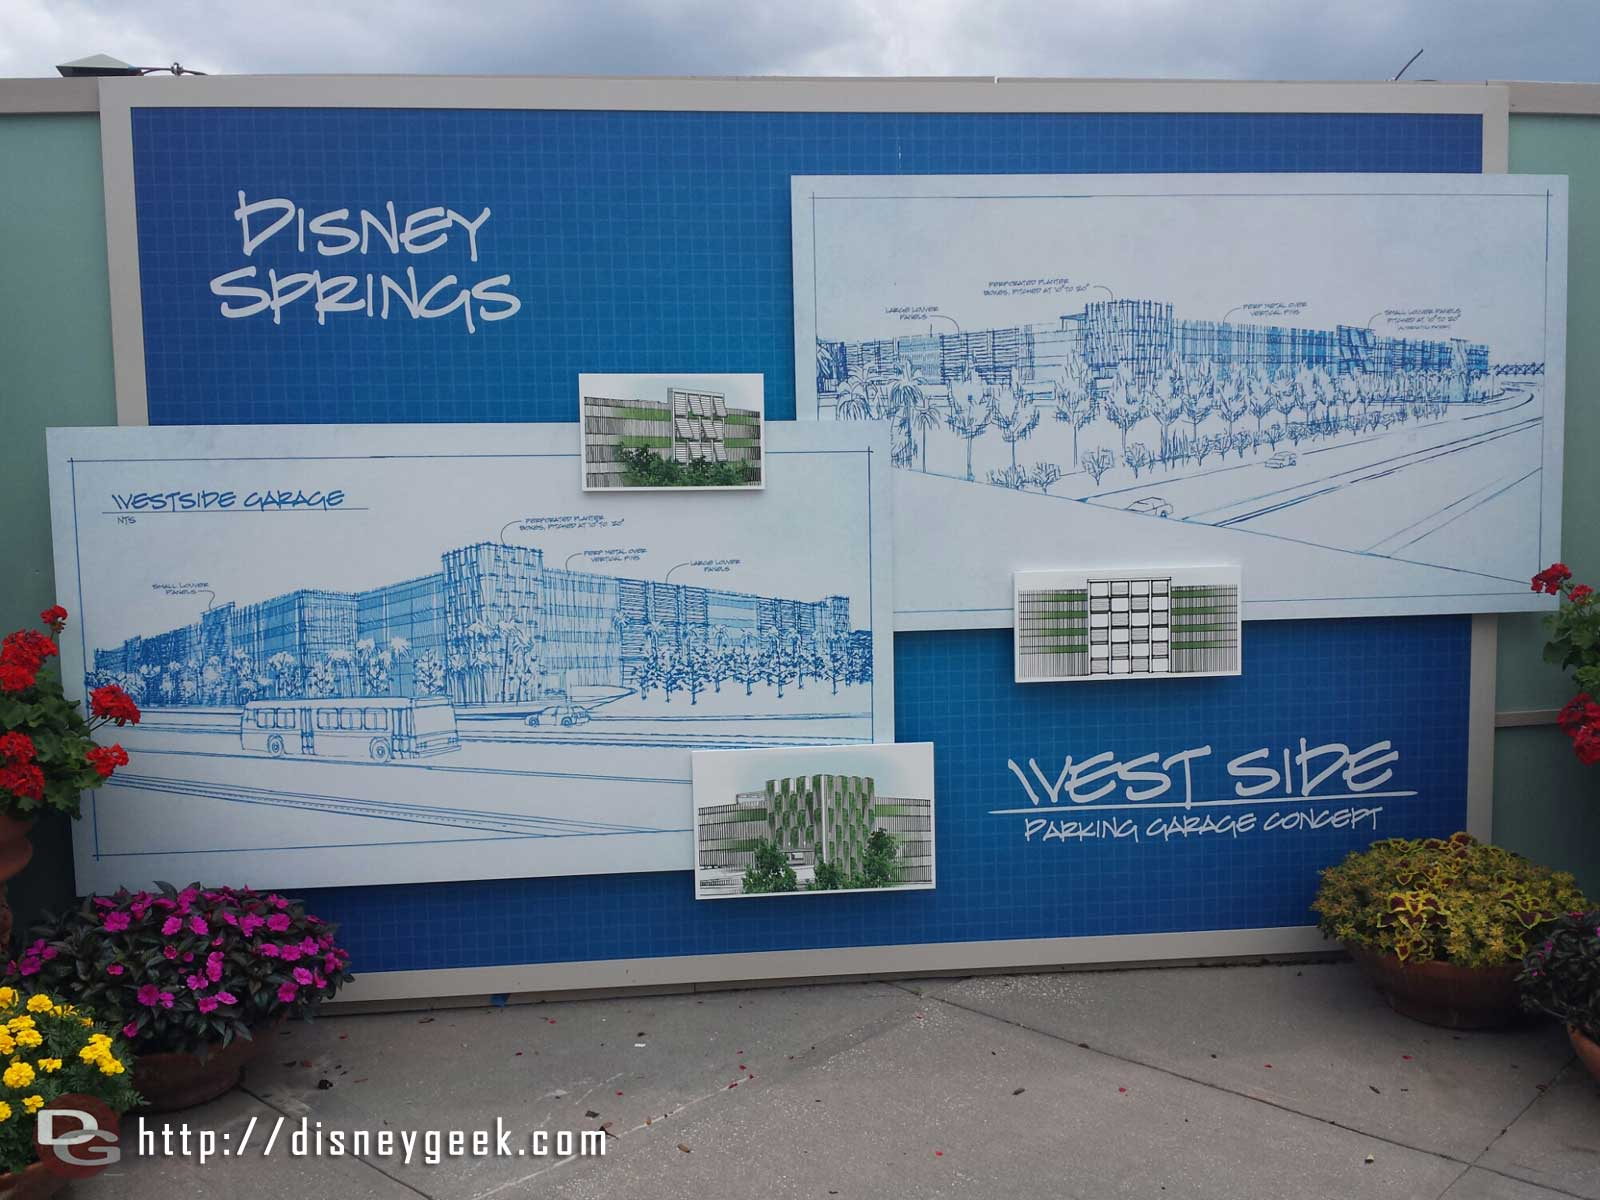 Concept art for the new Disney Springs parking structure